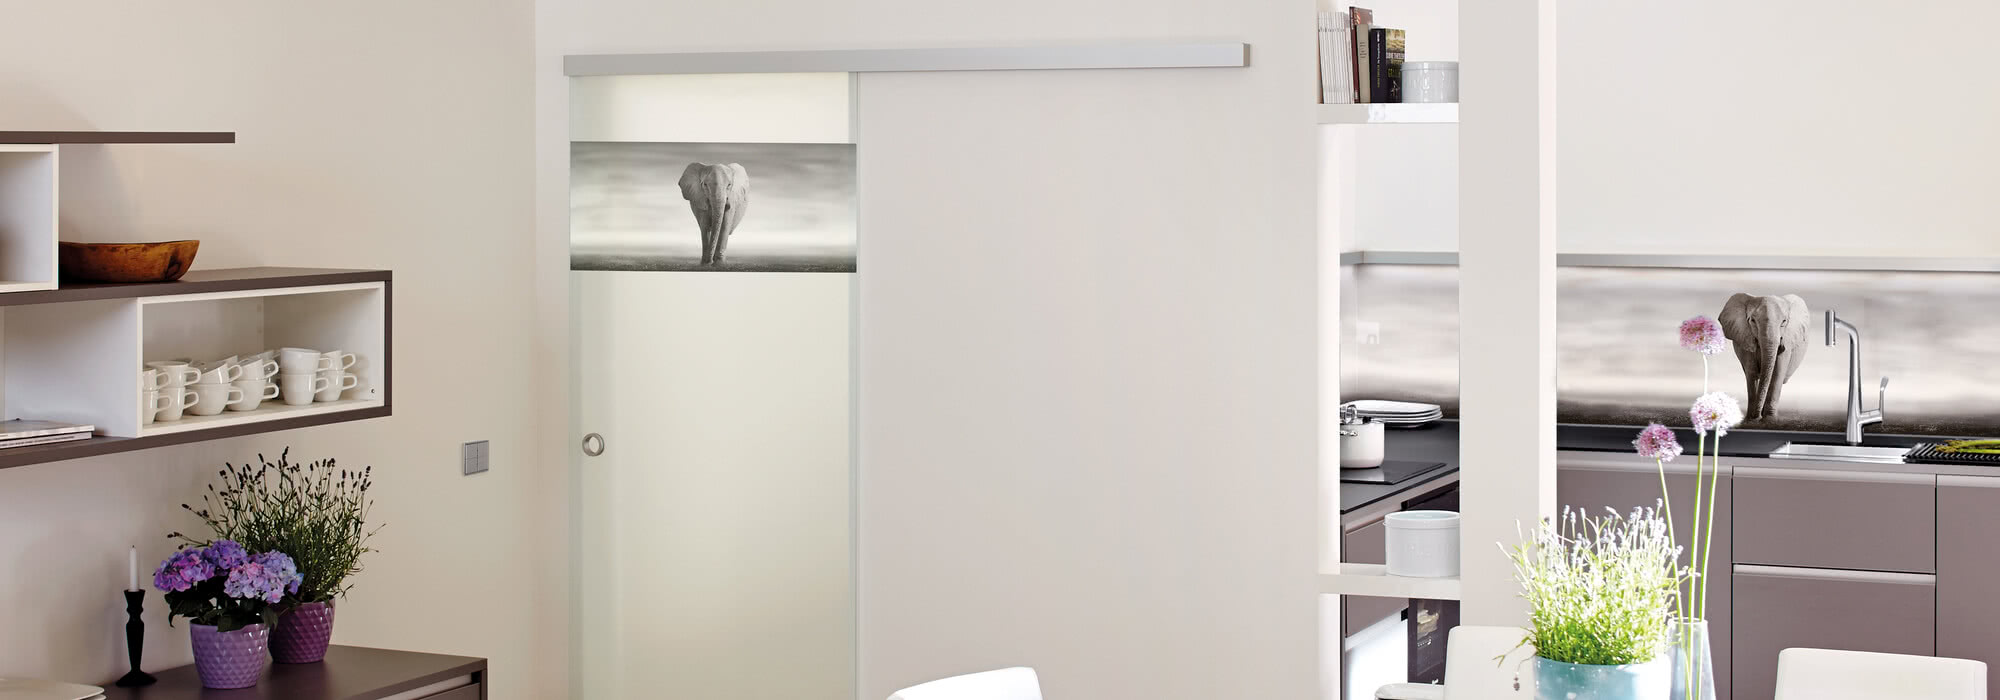 With ColorDoor you can design your doors to match the rest of the ambience in your living area